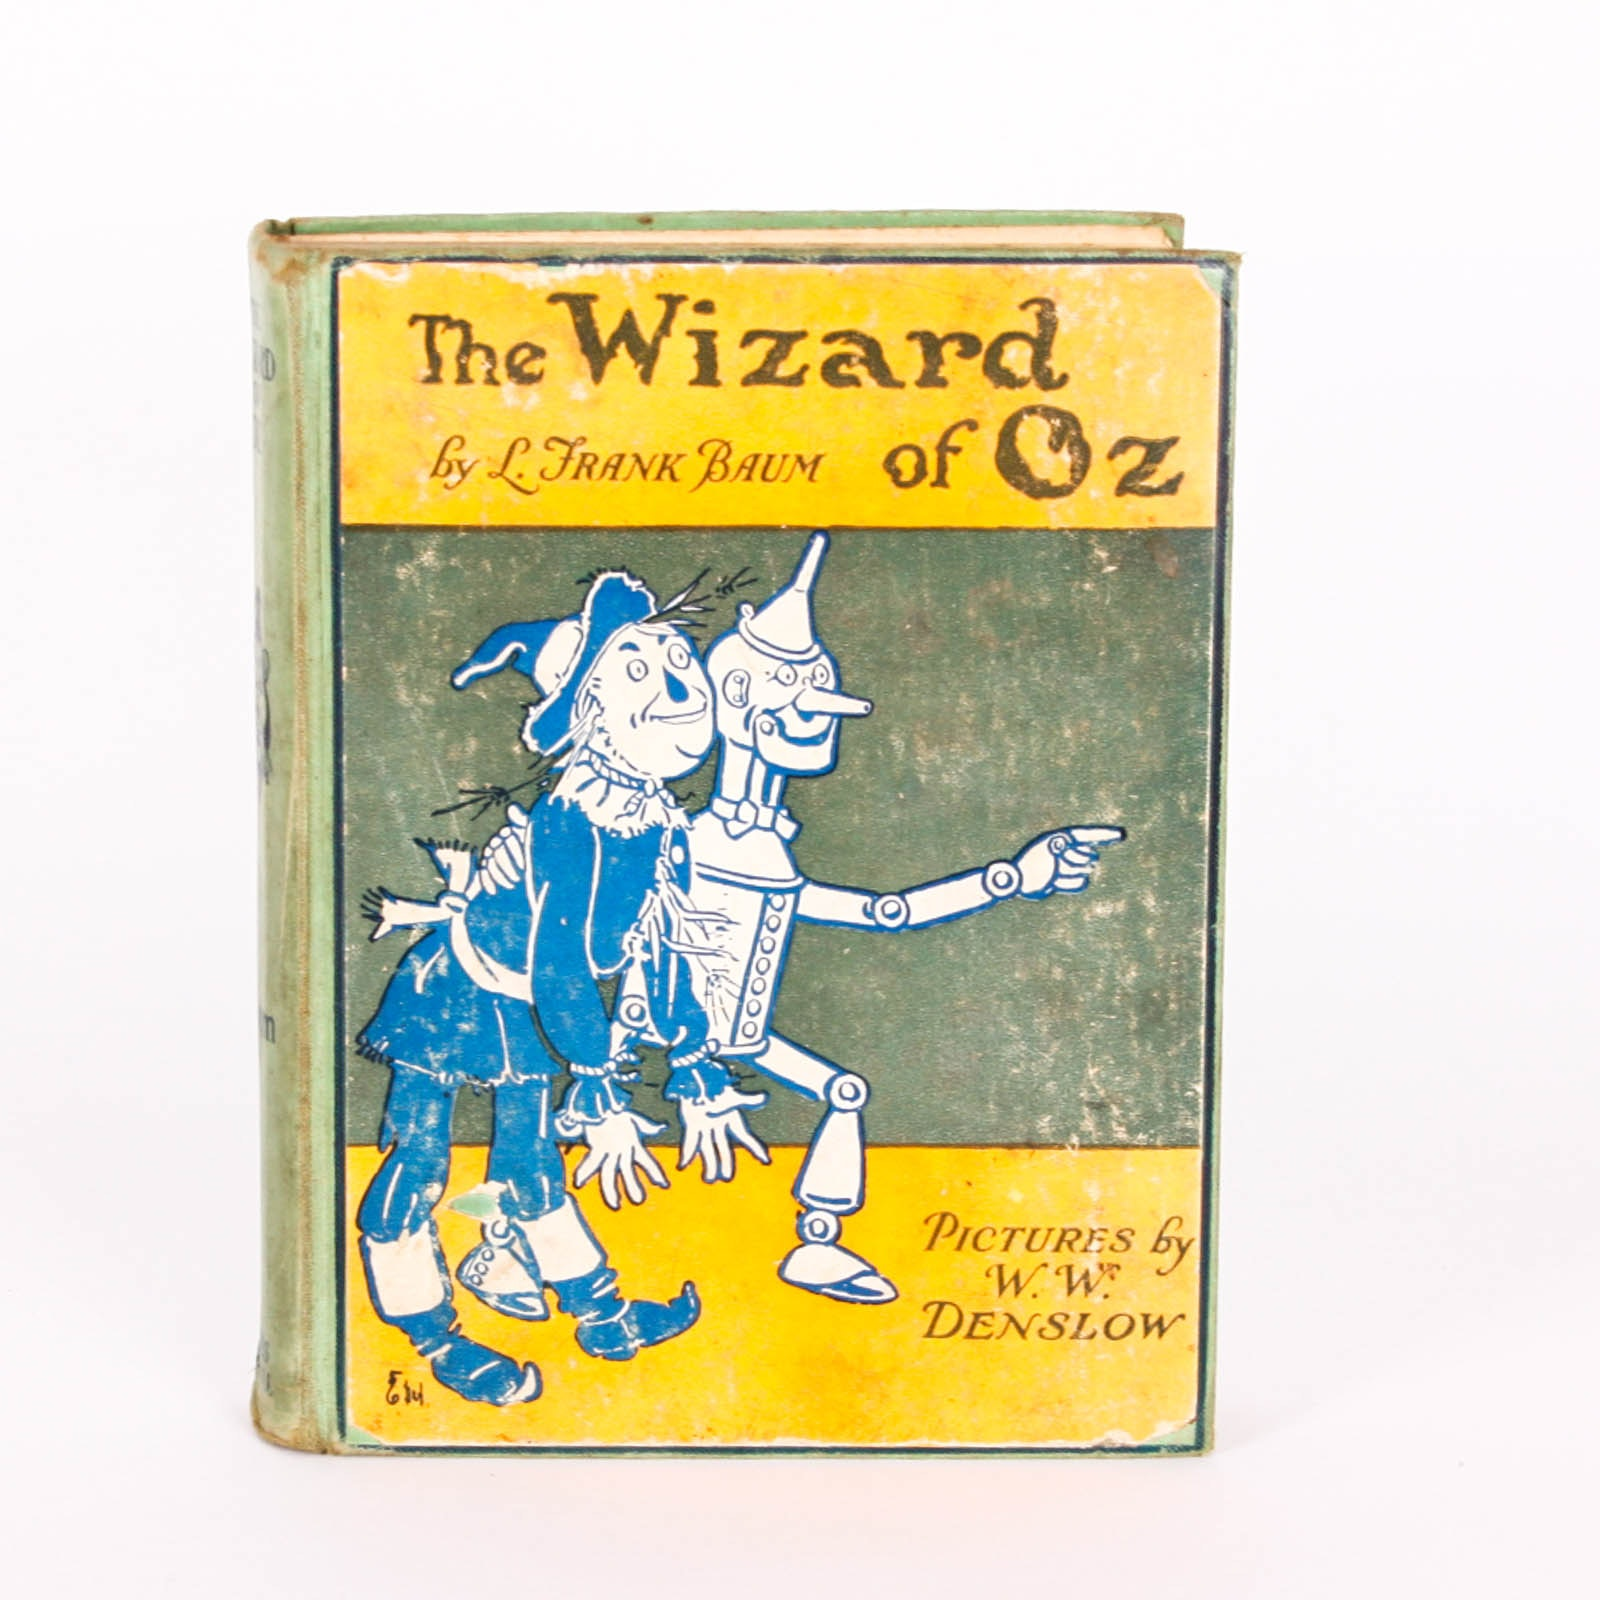 1903 'The Wizard of Oz' by L. Frank Baum